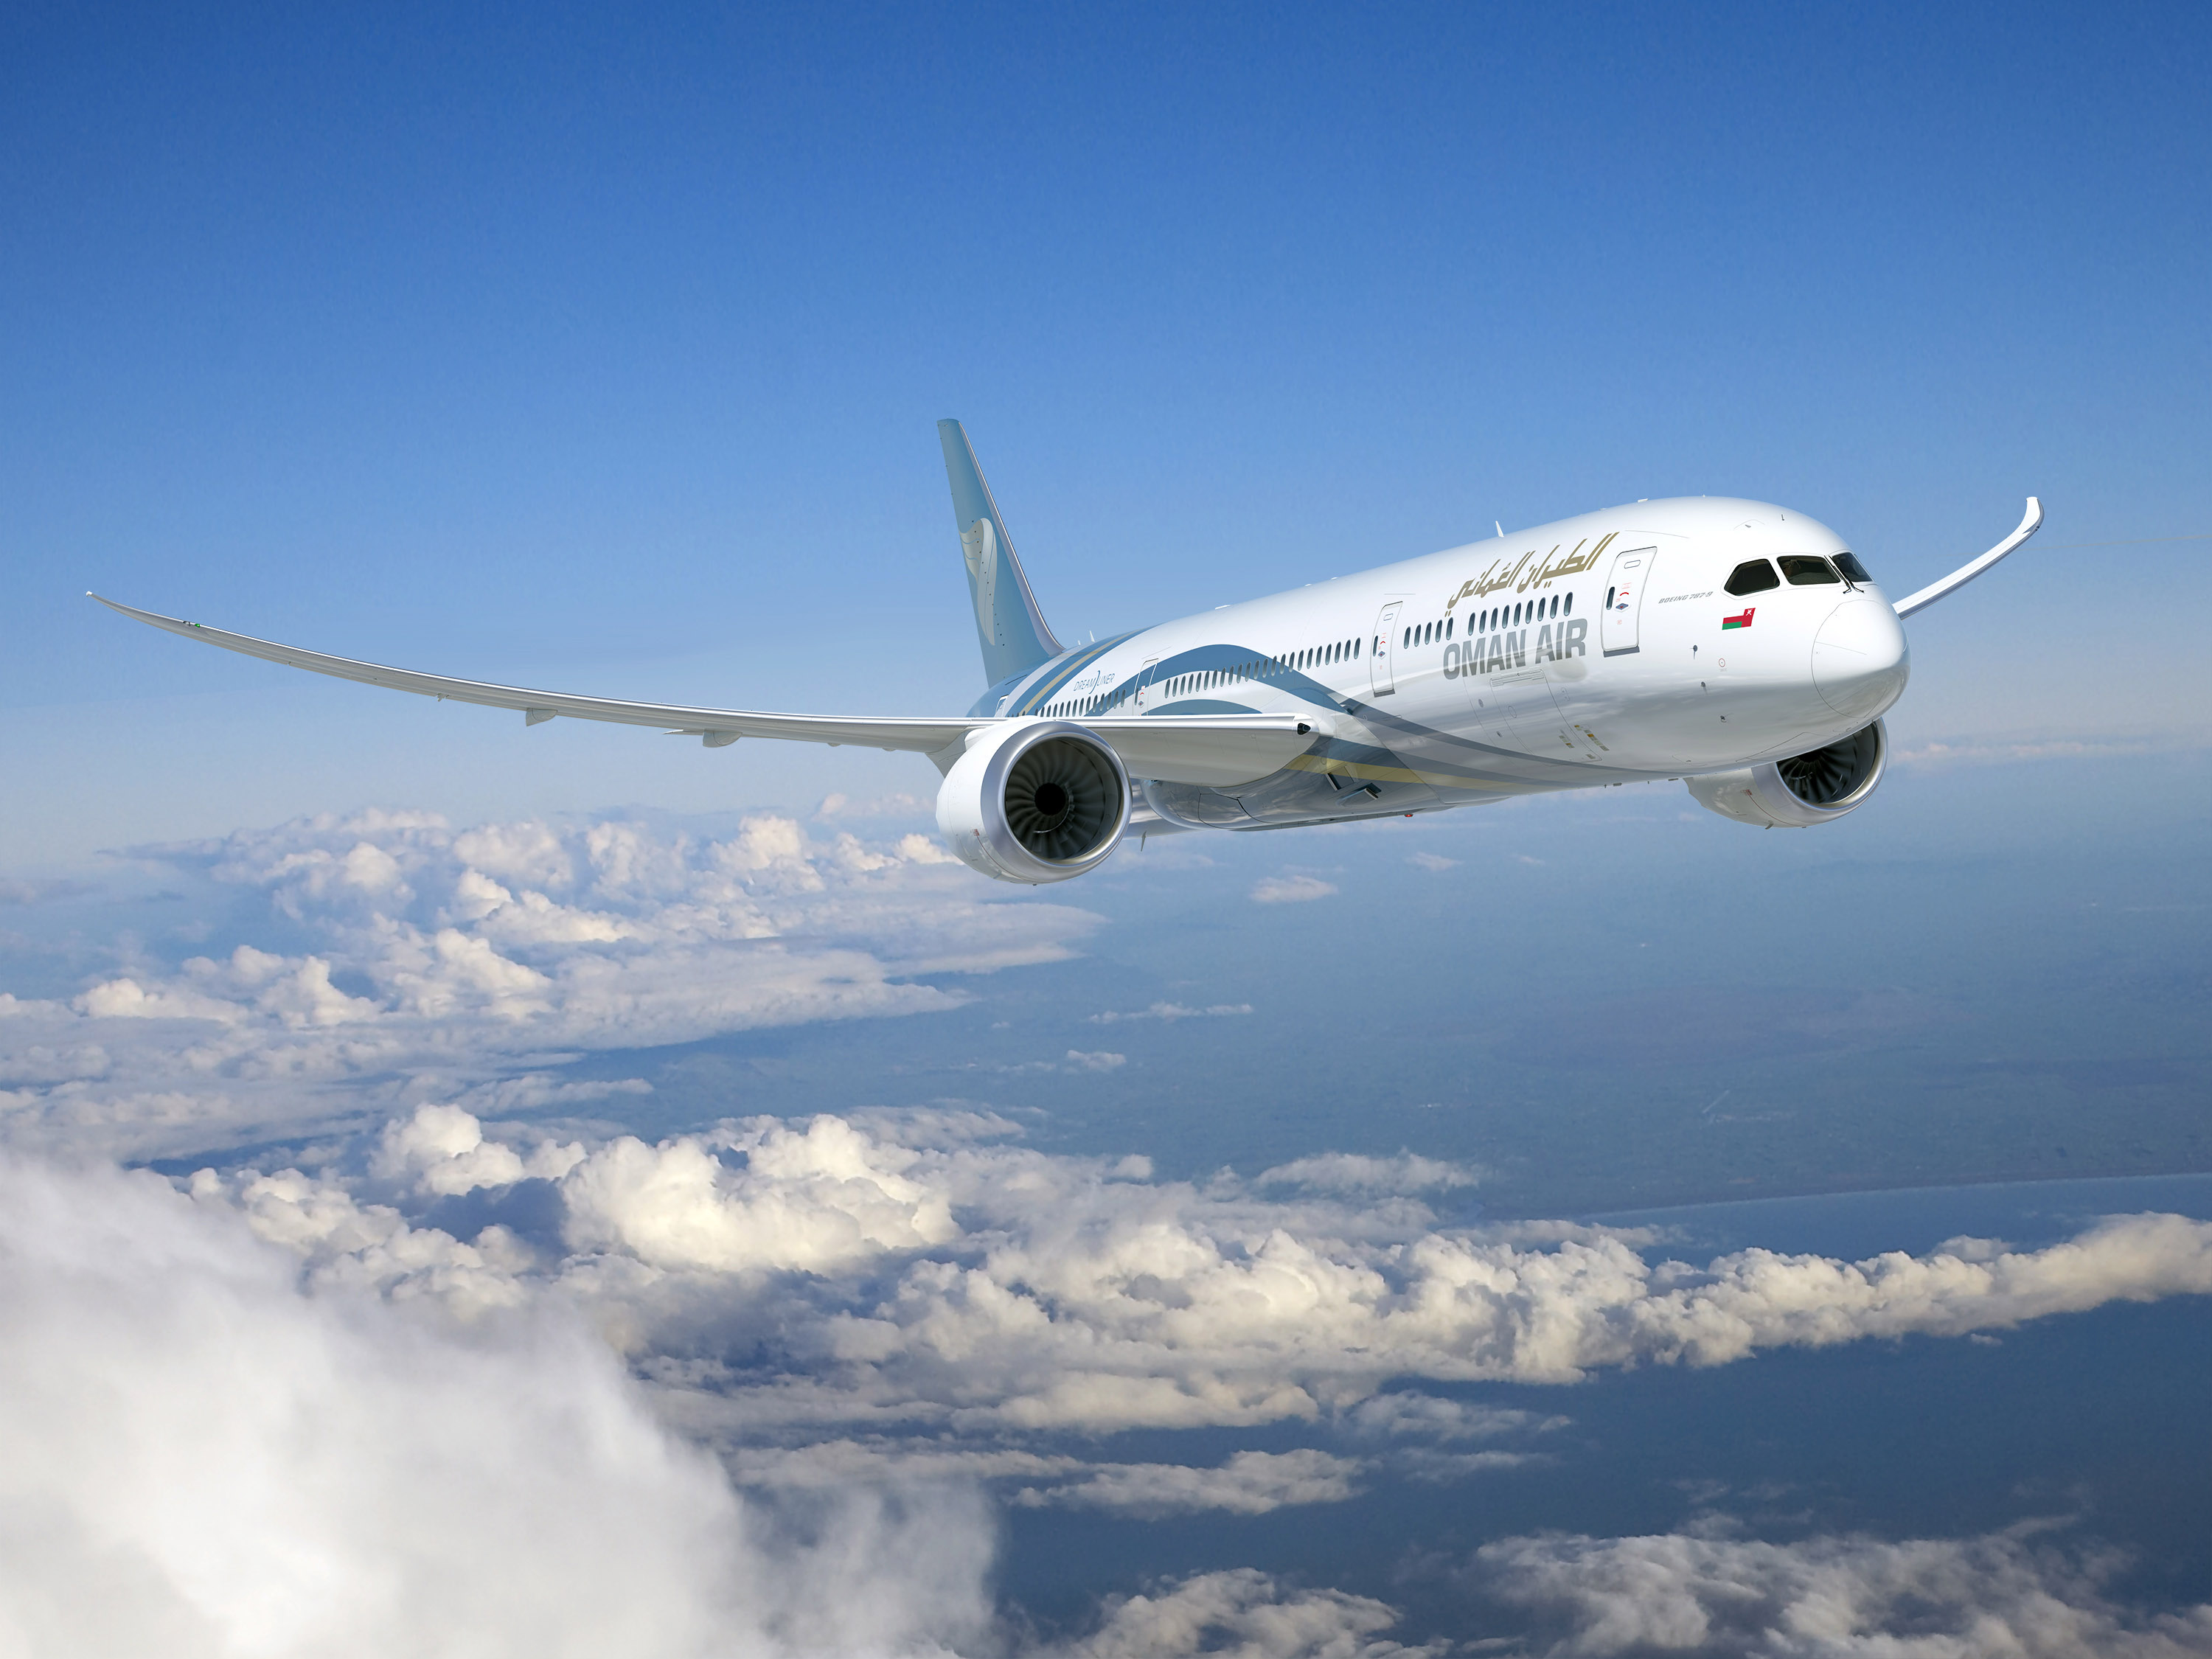 Boeing Services To Support Oman Air 787 Dreamliner